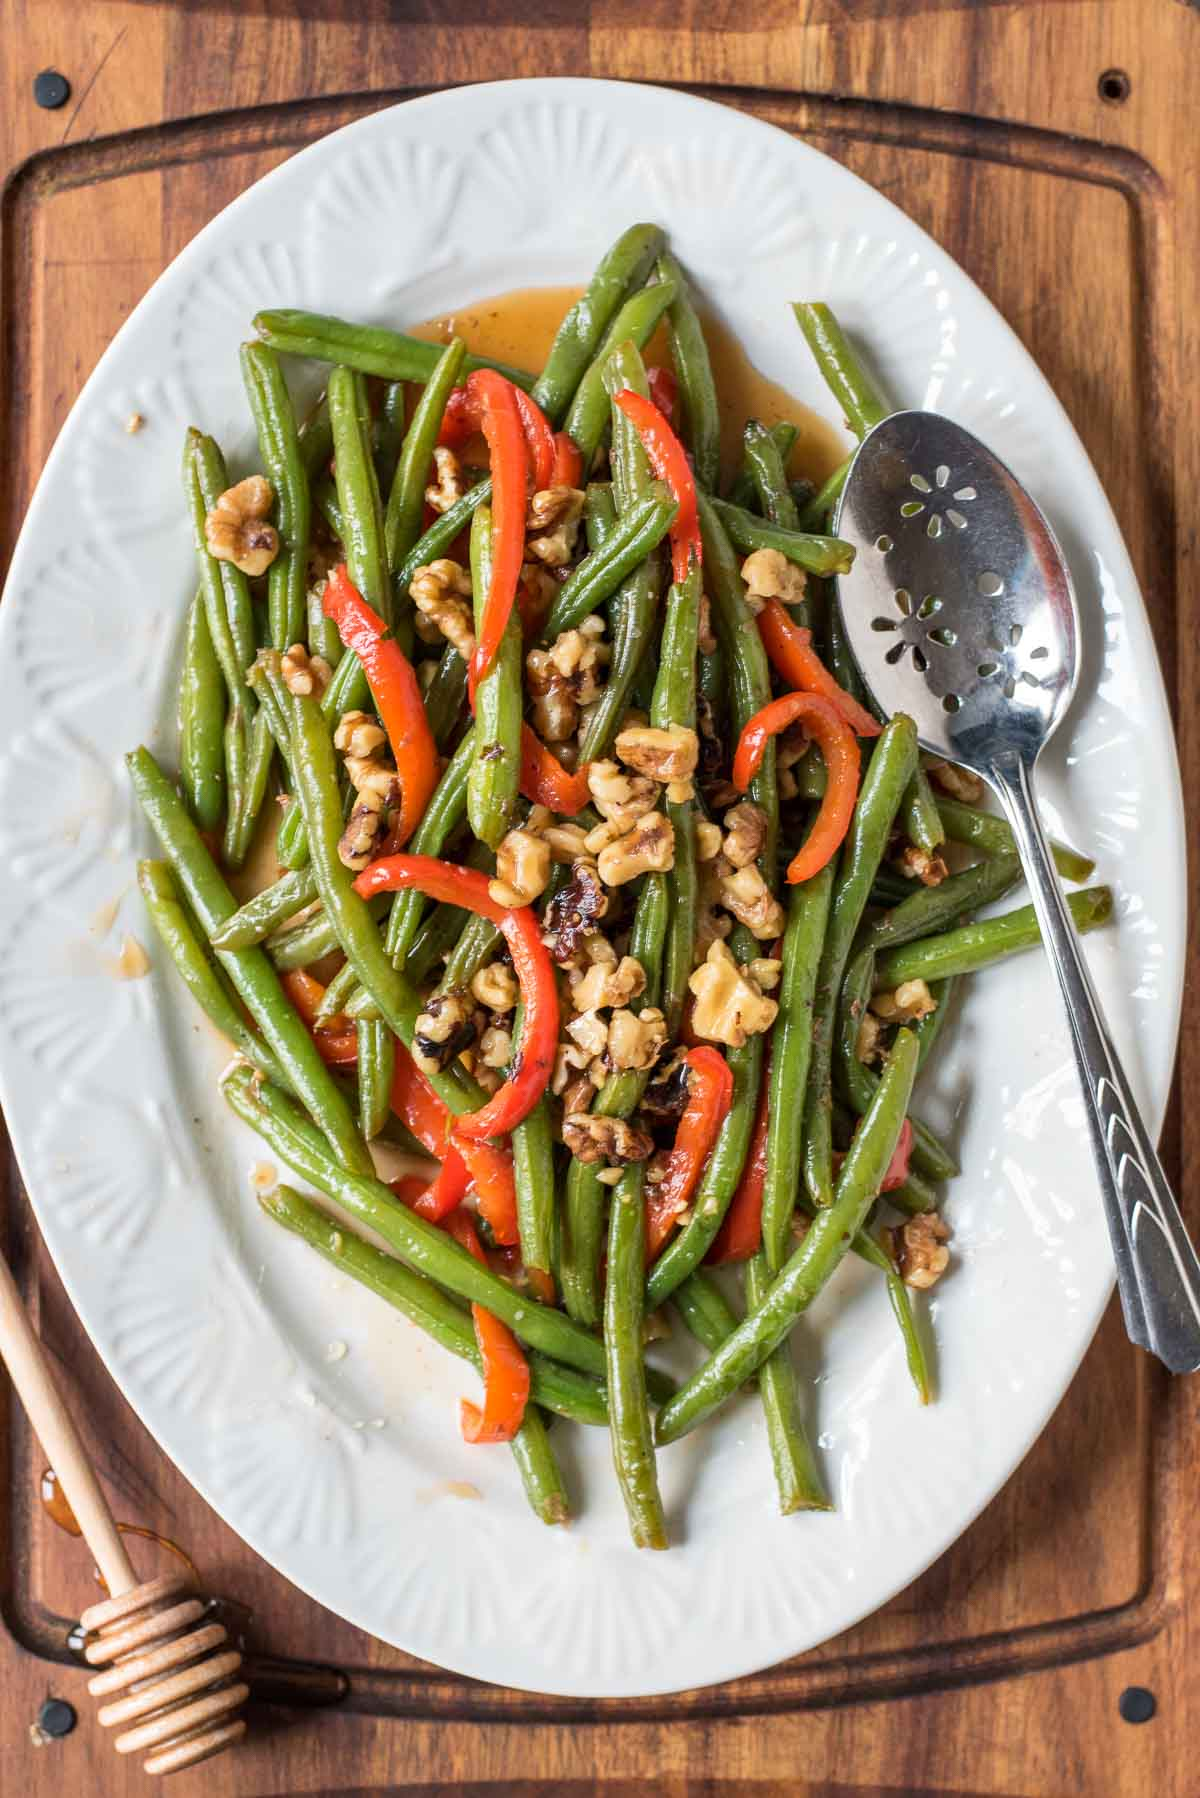 These Honey Green Beans with Red Pepper and Walnuts can be sauteed in 10 minutes flat! They're such an easy and beautiful side dish for busy weeknights or holidays.